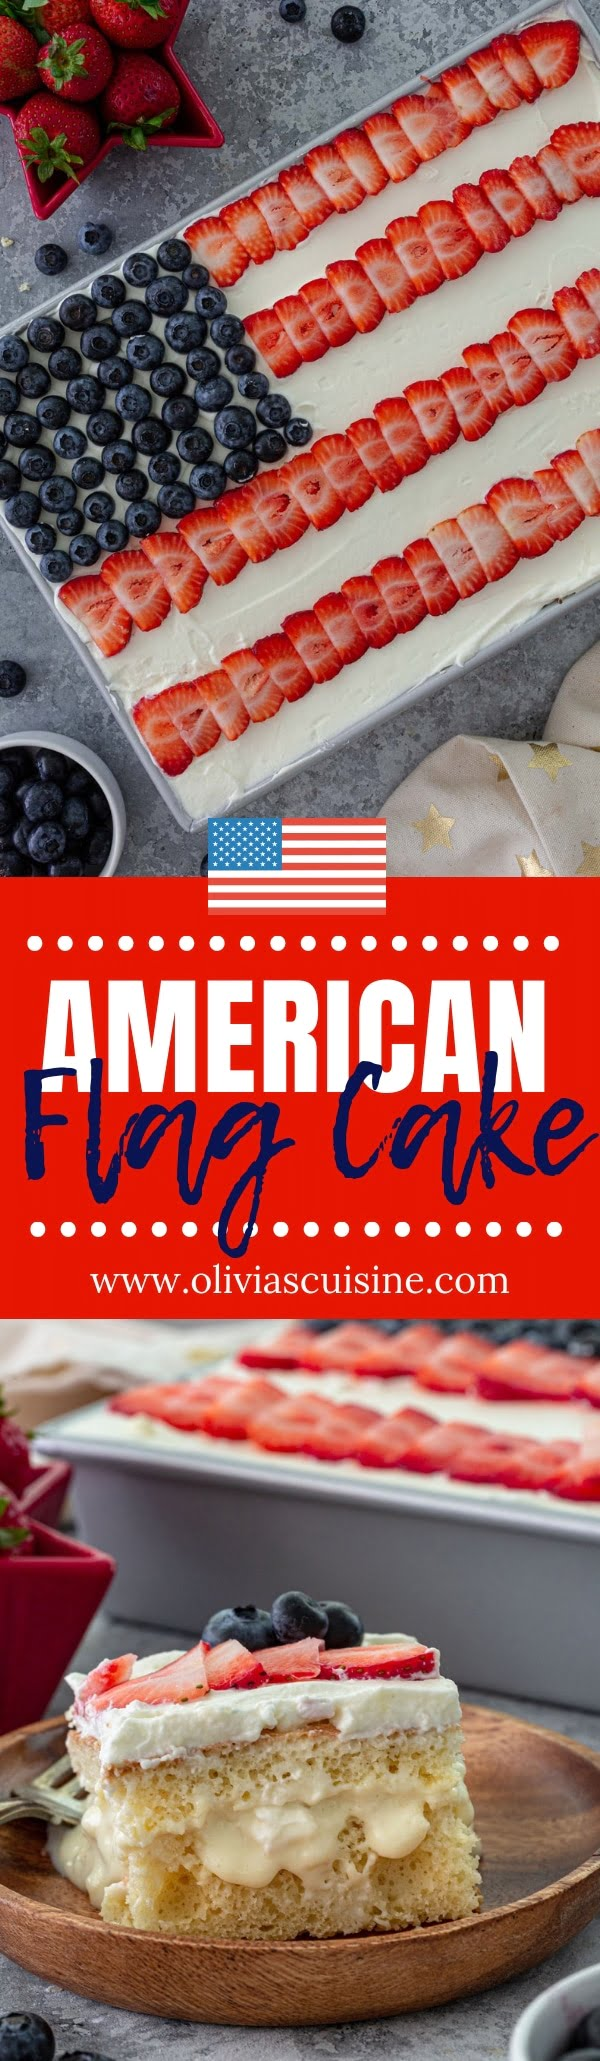 American Flag Cake | www.oliviascuisine.com | An American Flag Cake that not only looks pretty and patriotic but also tastes amazing? Yes, it exists! And it makes an eye-catching centerpiece for your Memorial Day or Fourth of July celebrations. (Recipe and food photography by @oliviascuisine.) #flagcake #redwhiteandblue #american #4thofjuly #memorialday